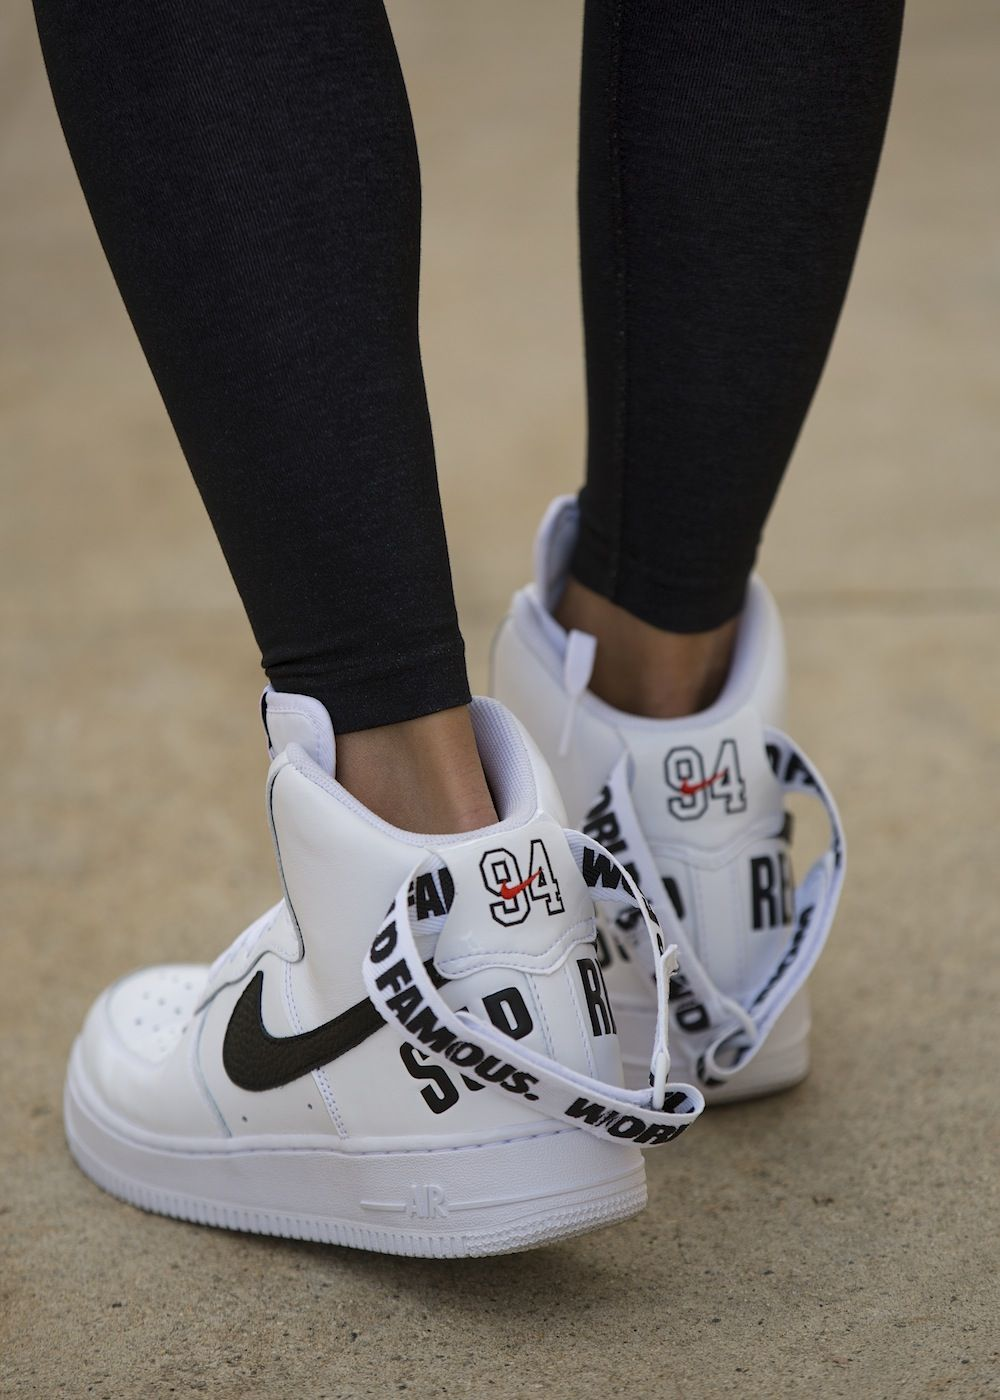 Sweat The Style Nike Shoes Outlet Shoe Boots Nike Shoes Women